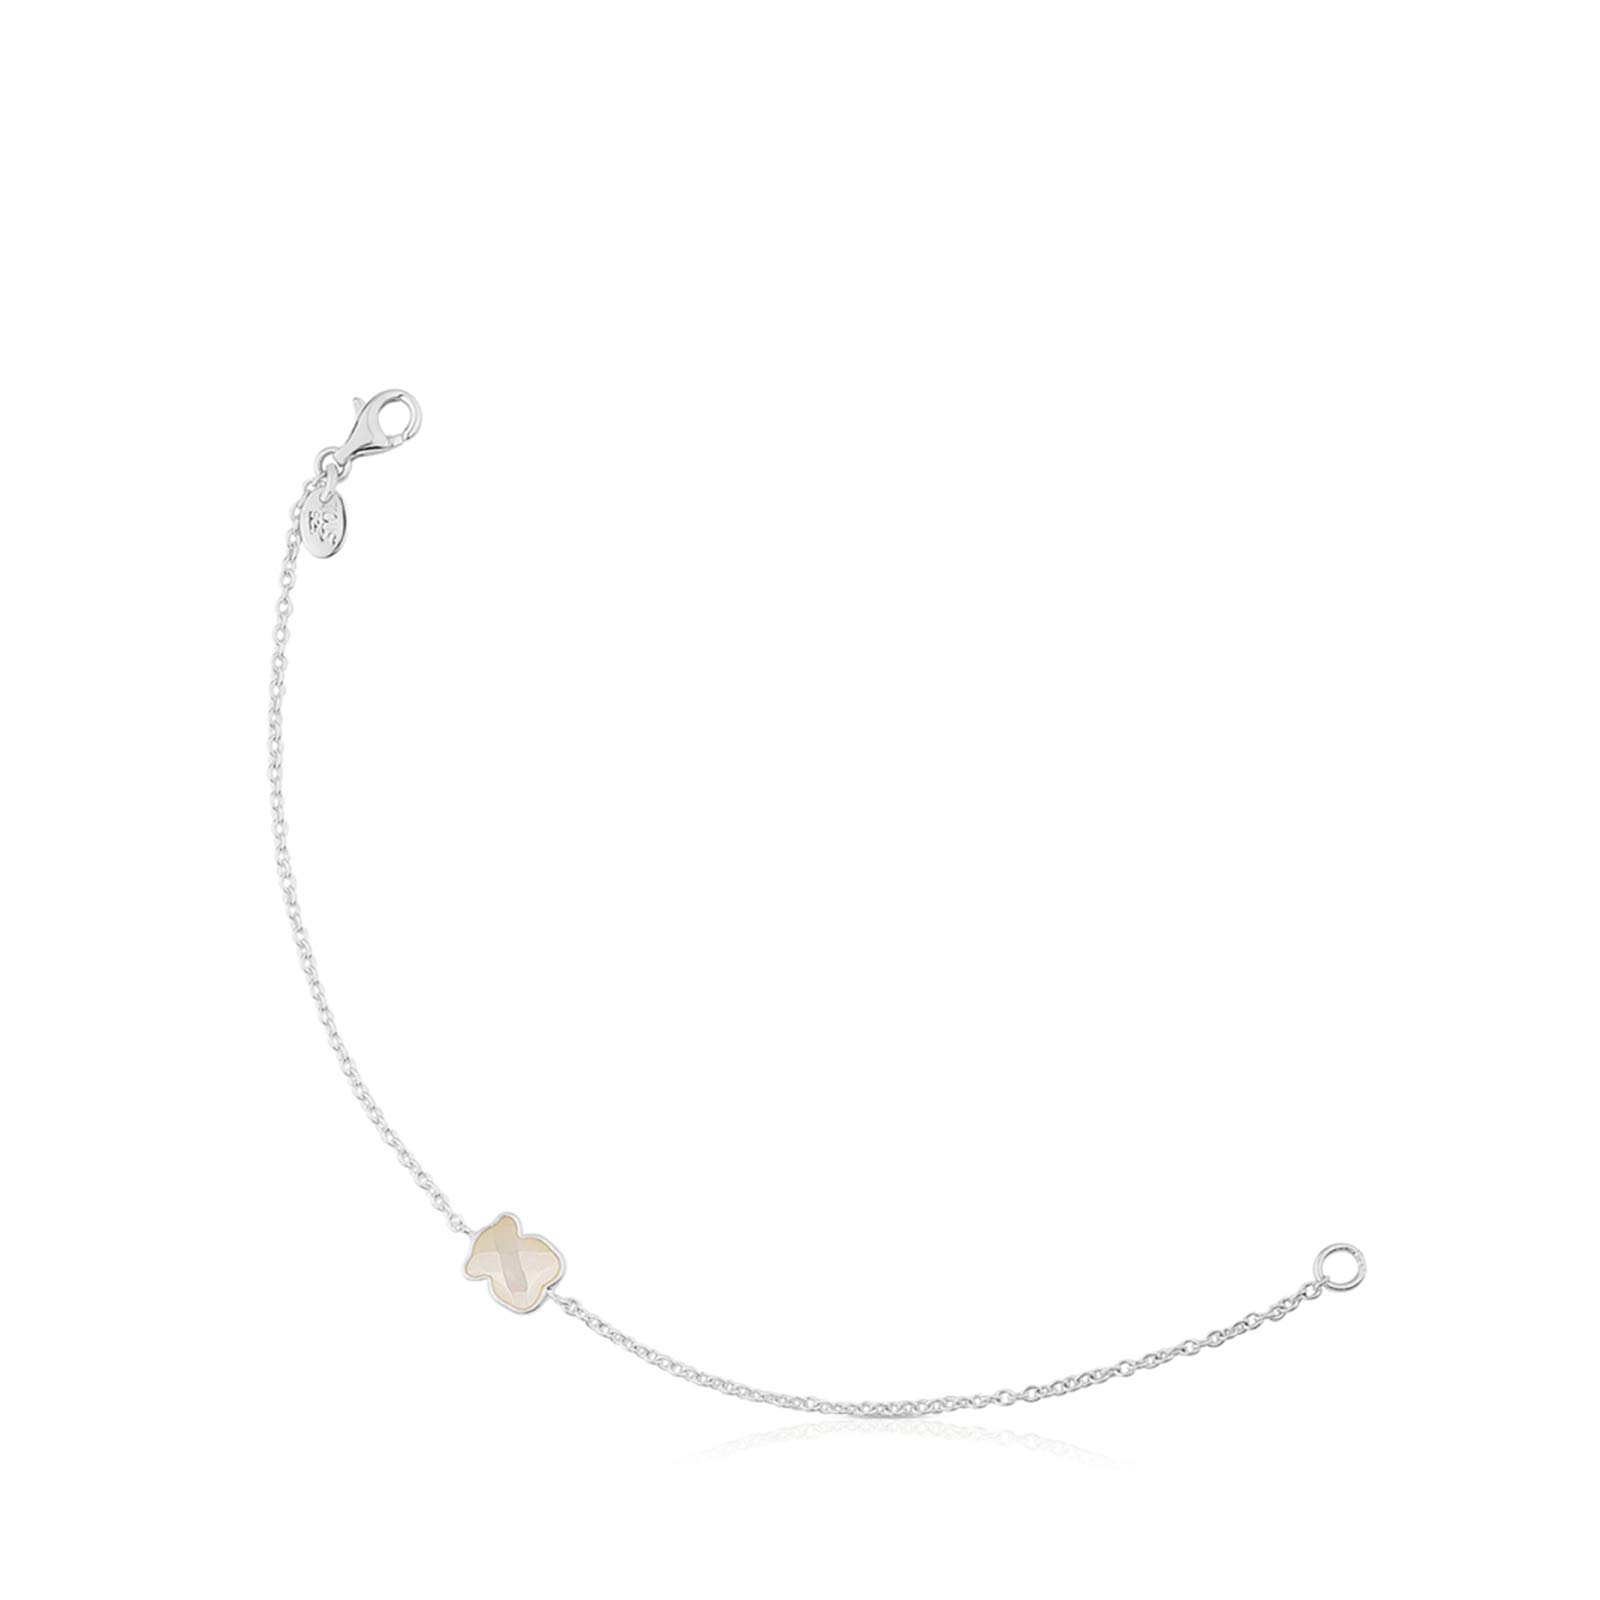 TOUS Bracelet in Sterling Silver with Nacre Bear - Length: 17.5 cm